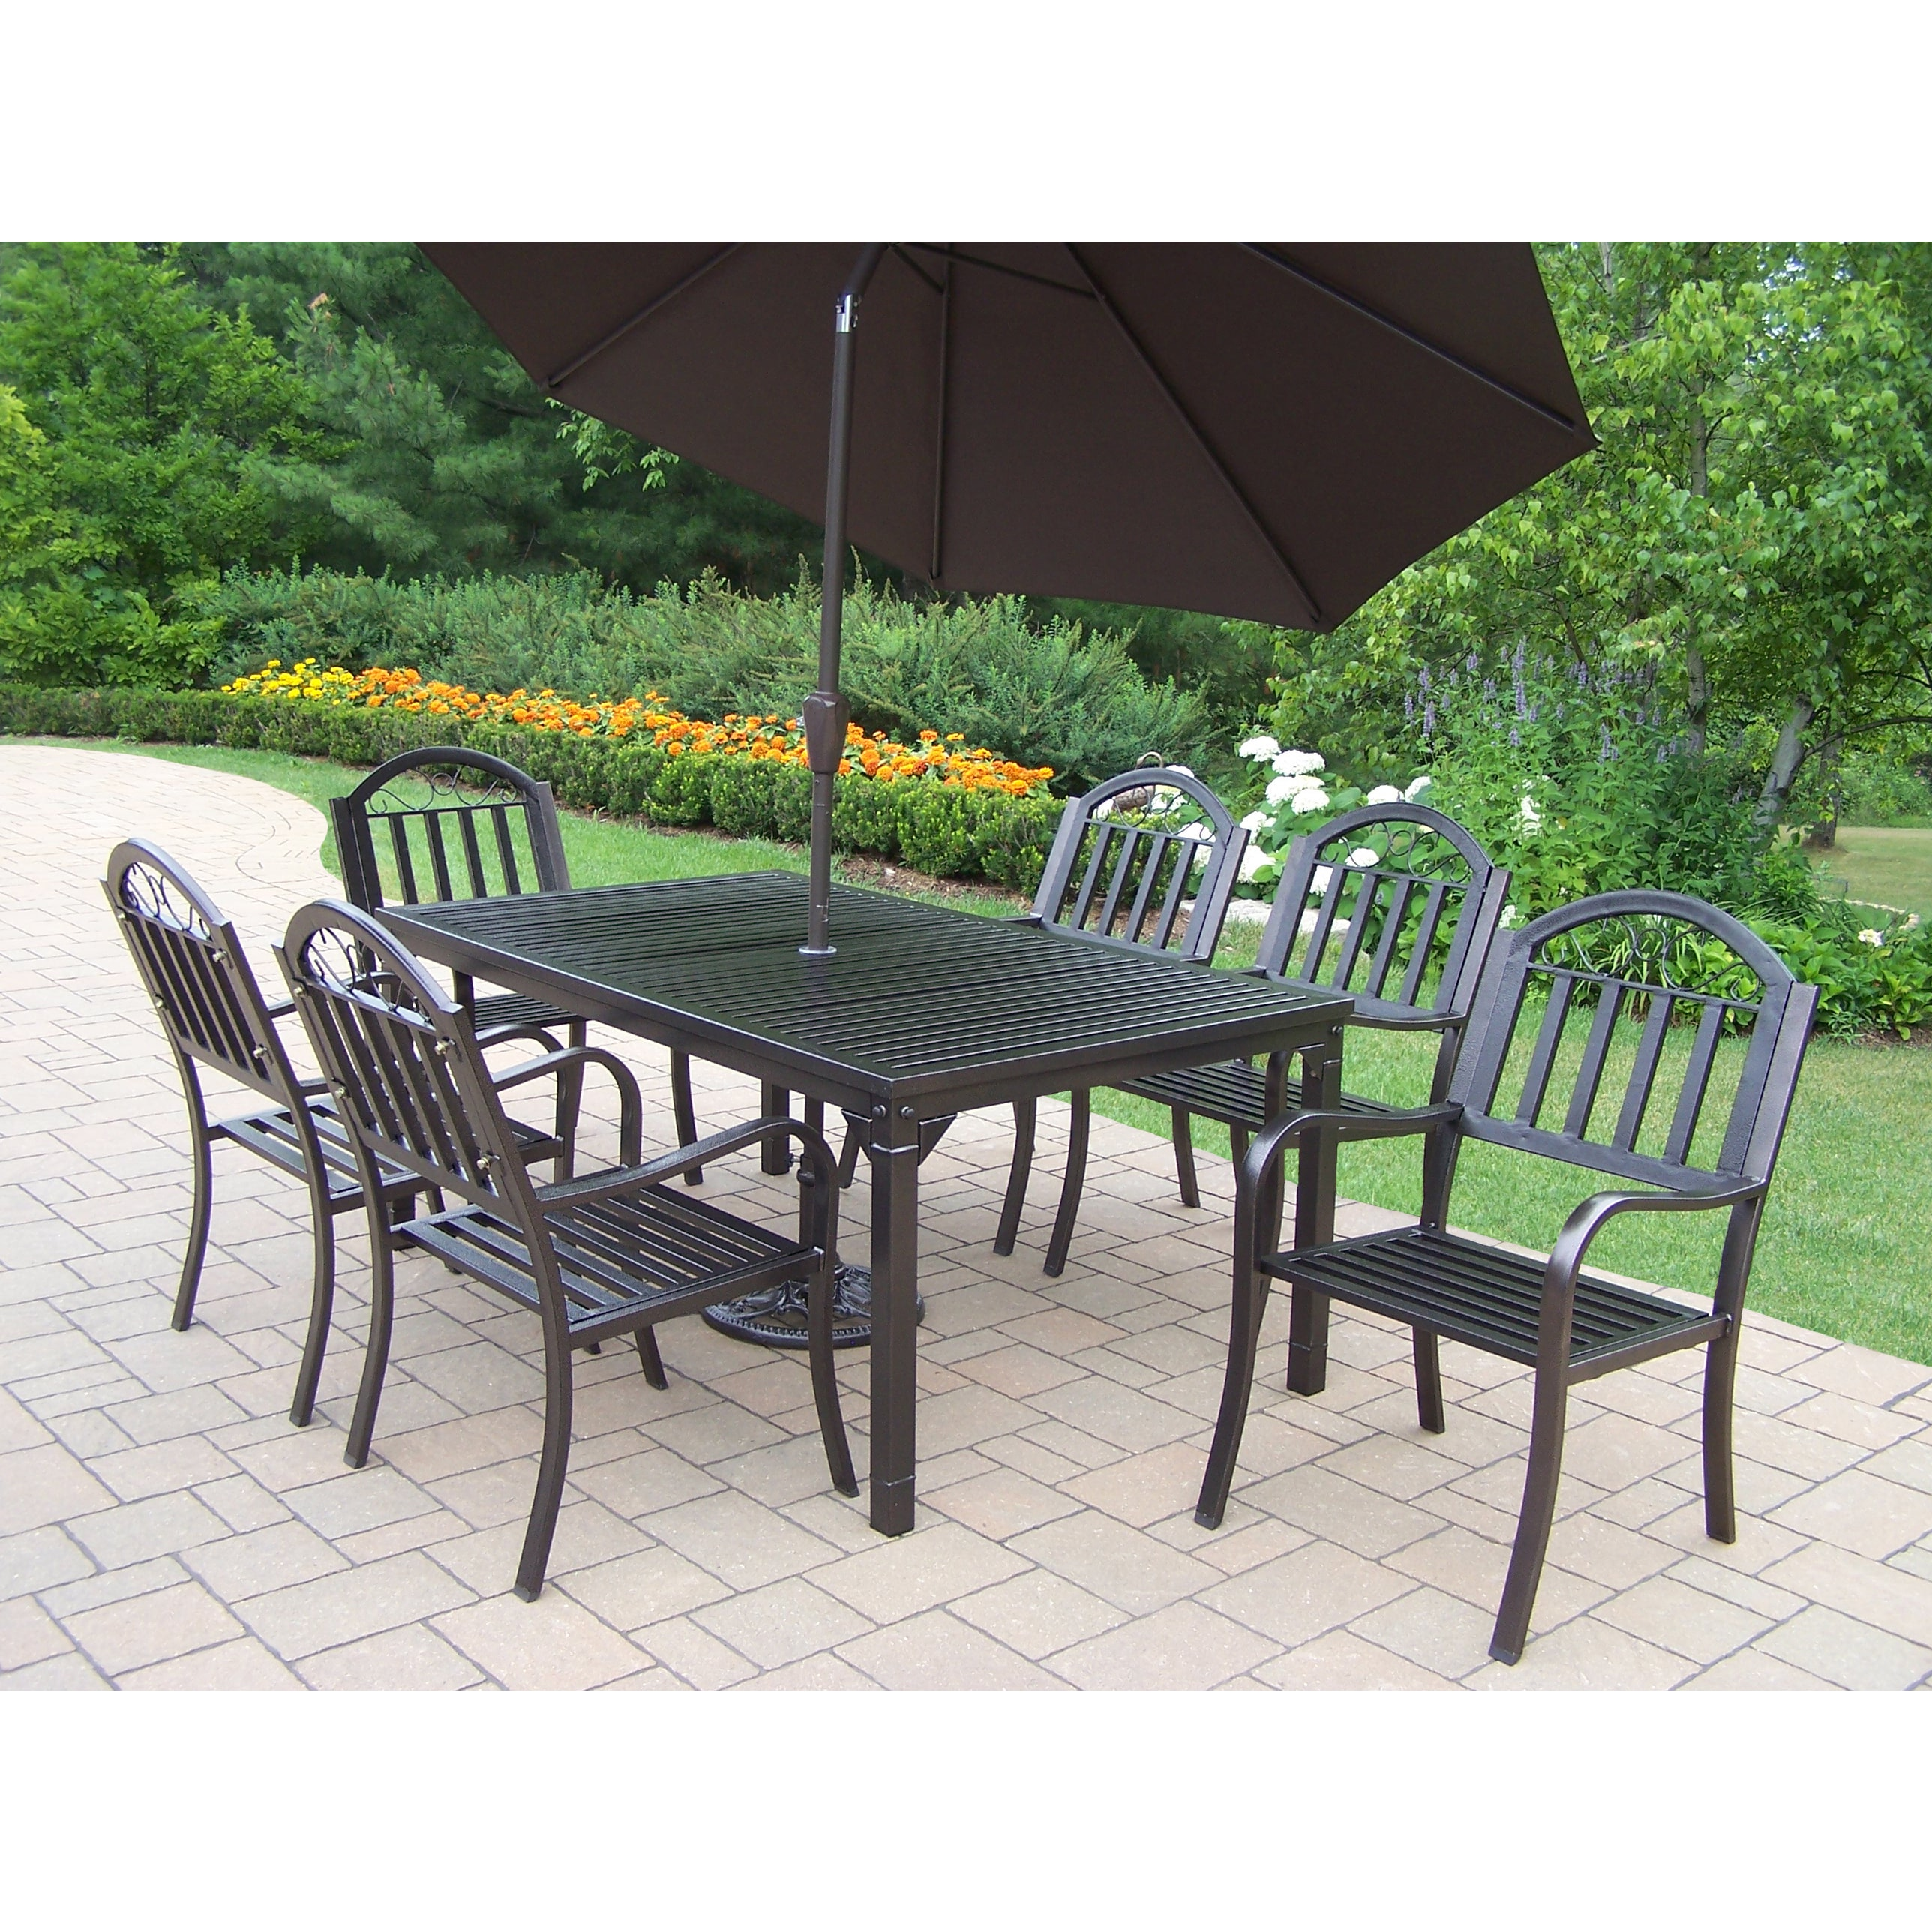 Oakland Living Corporation Hometown Brown Iron Shaded 9-piece Patio Dining Set